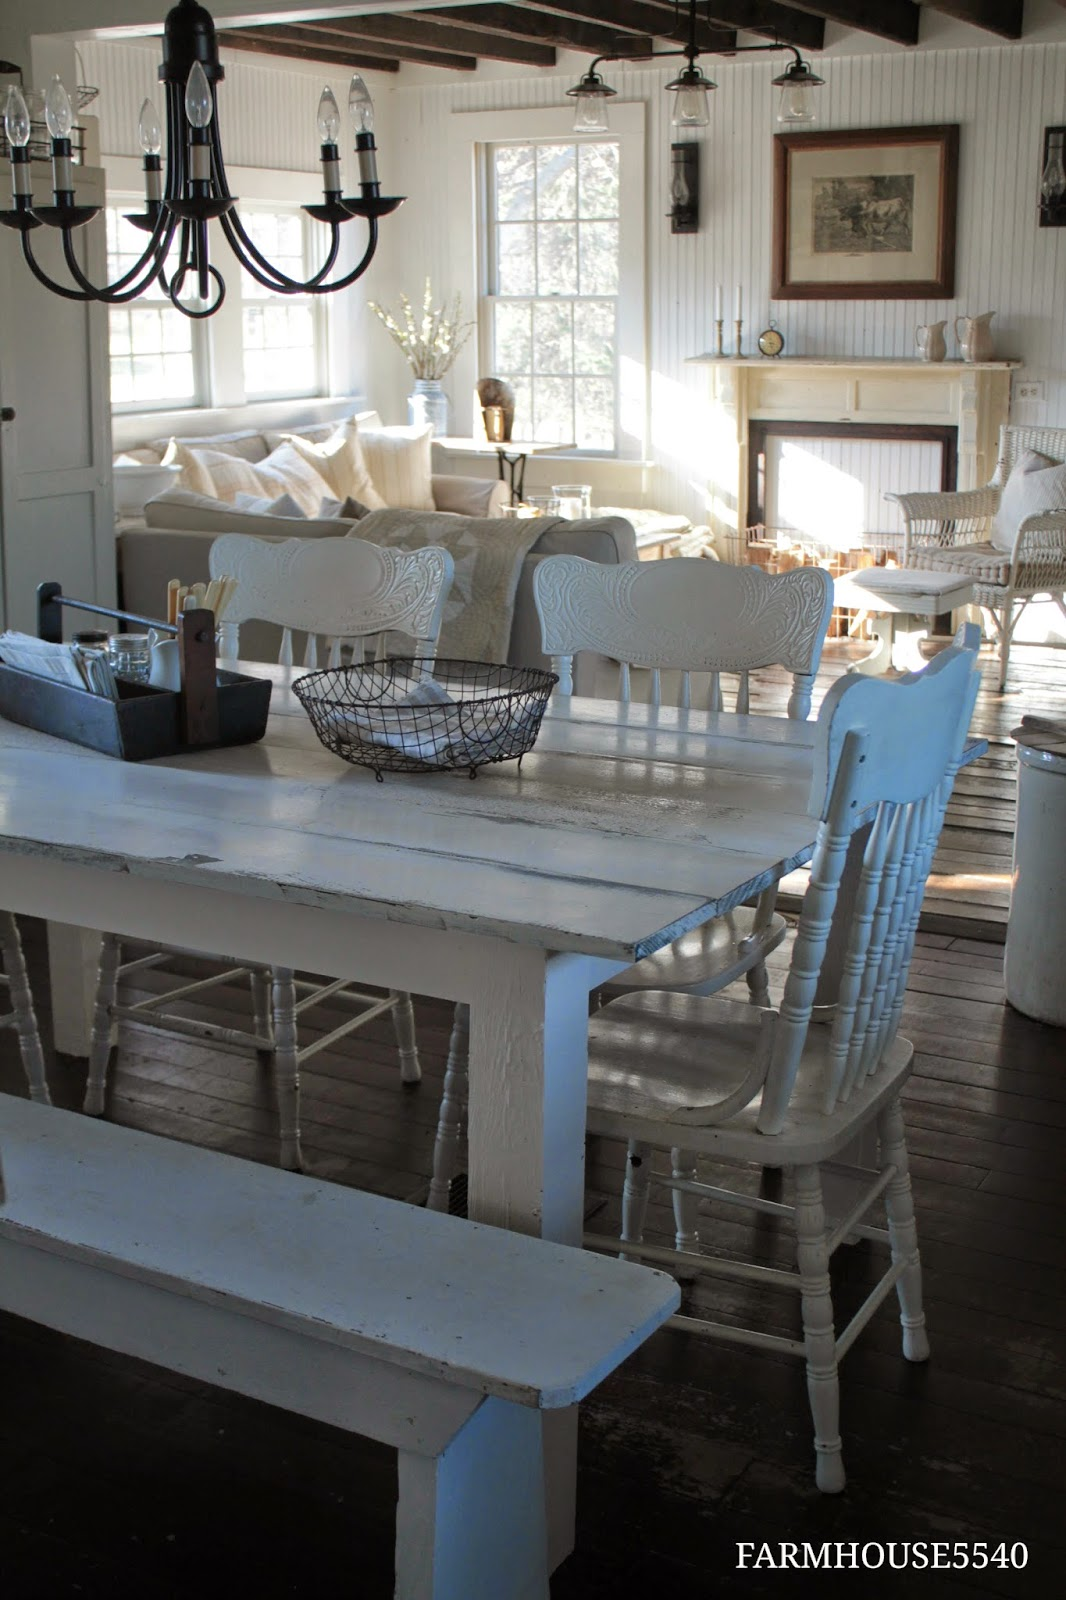 Farm Chairs Farmhouse 5540 Our Farmhouse Kitchen Table